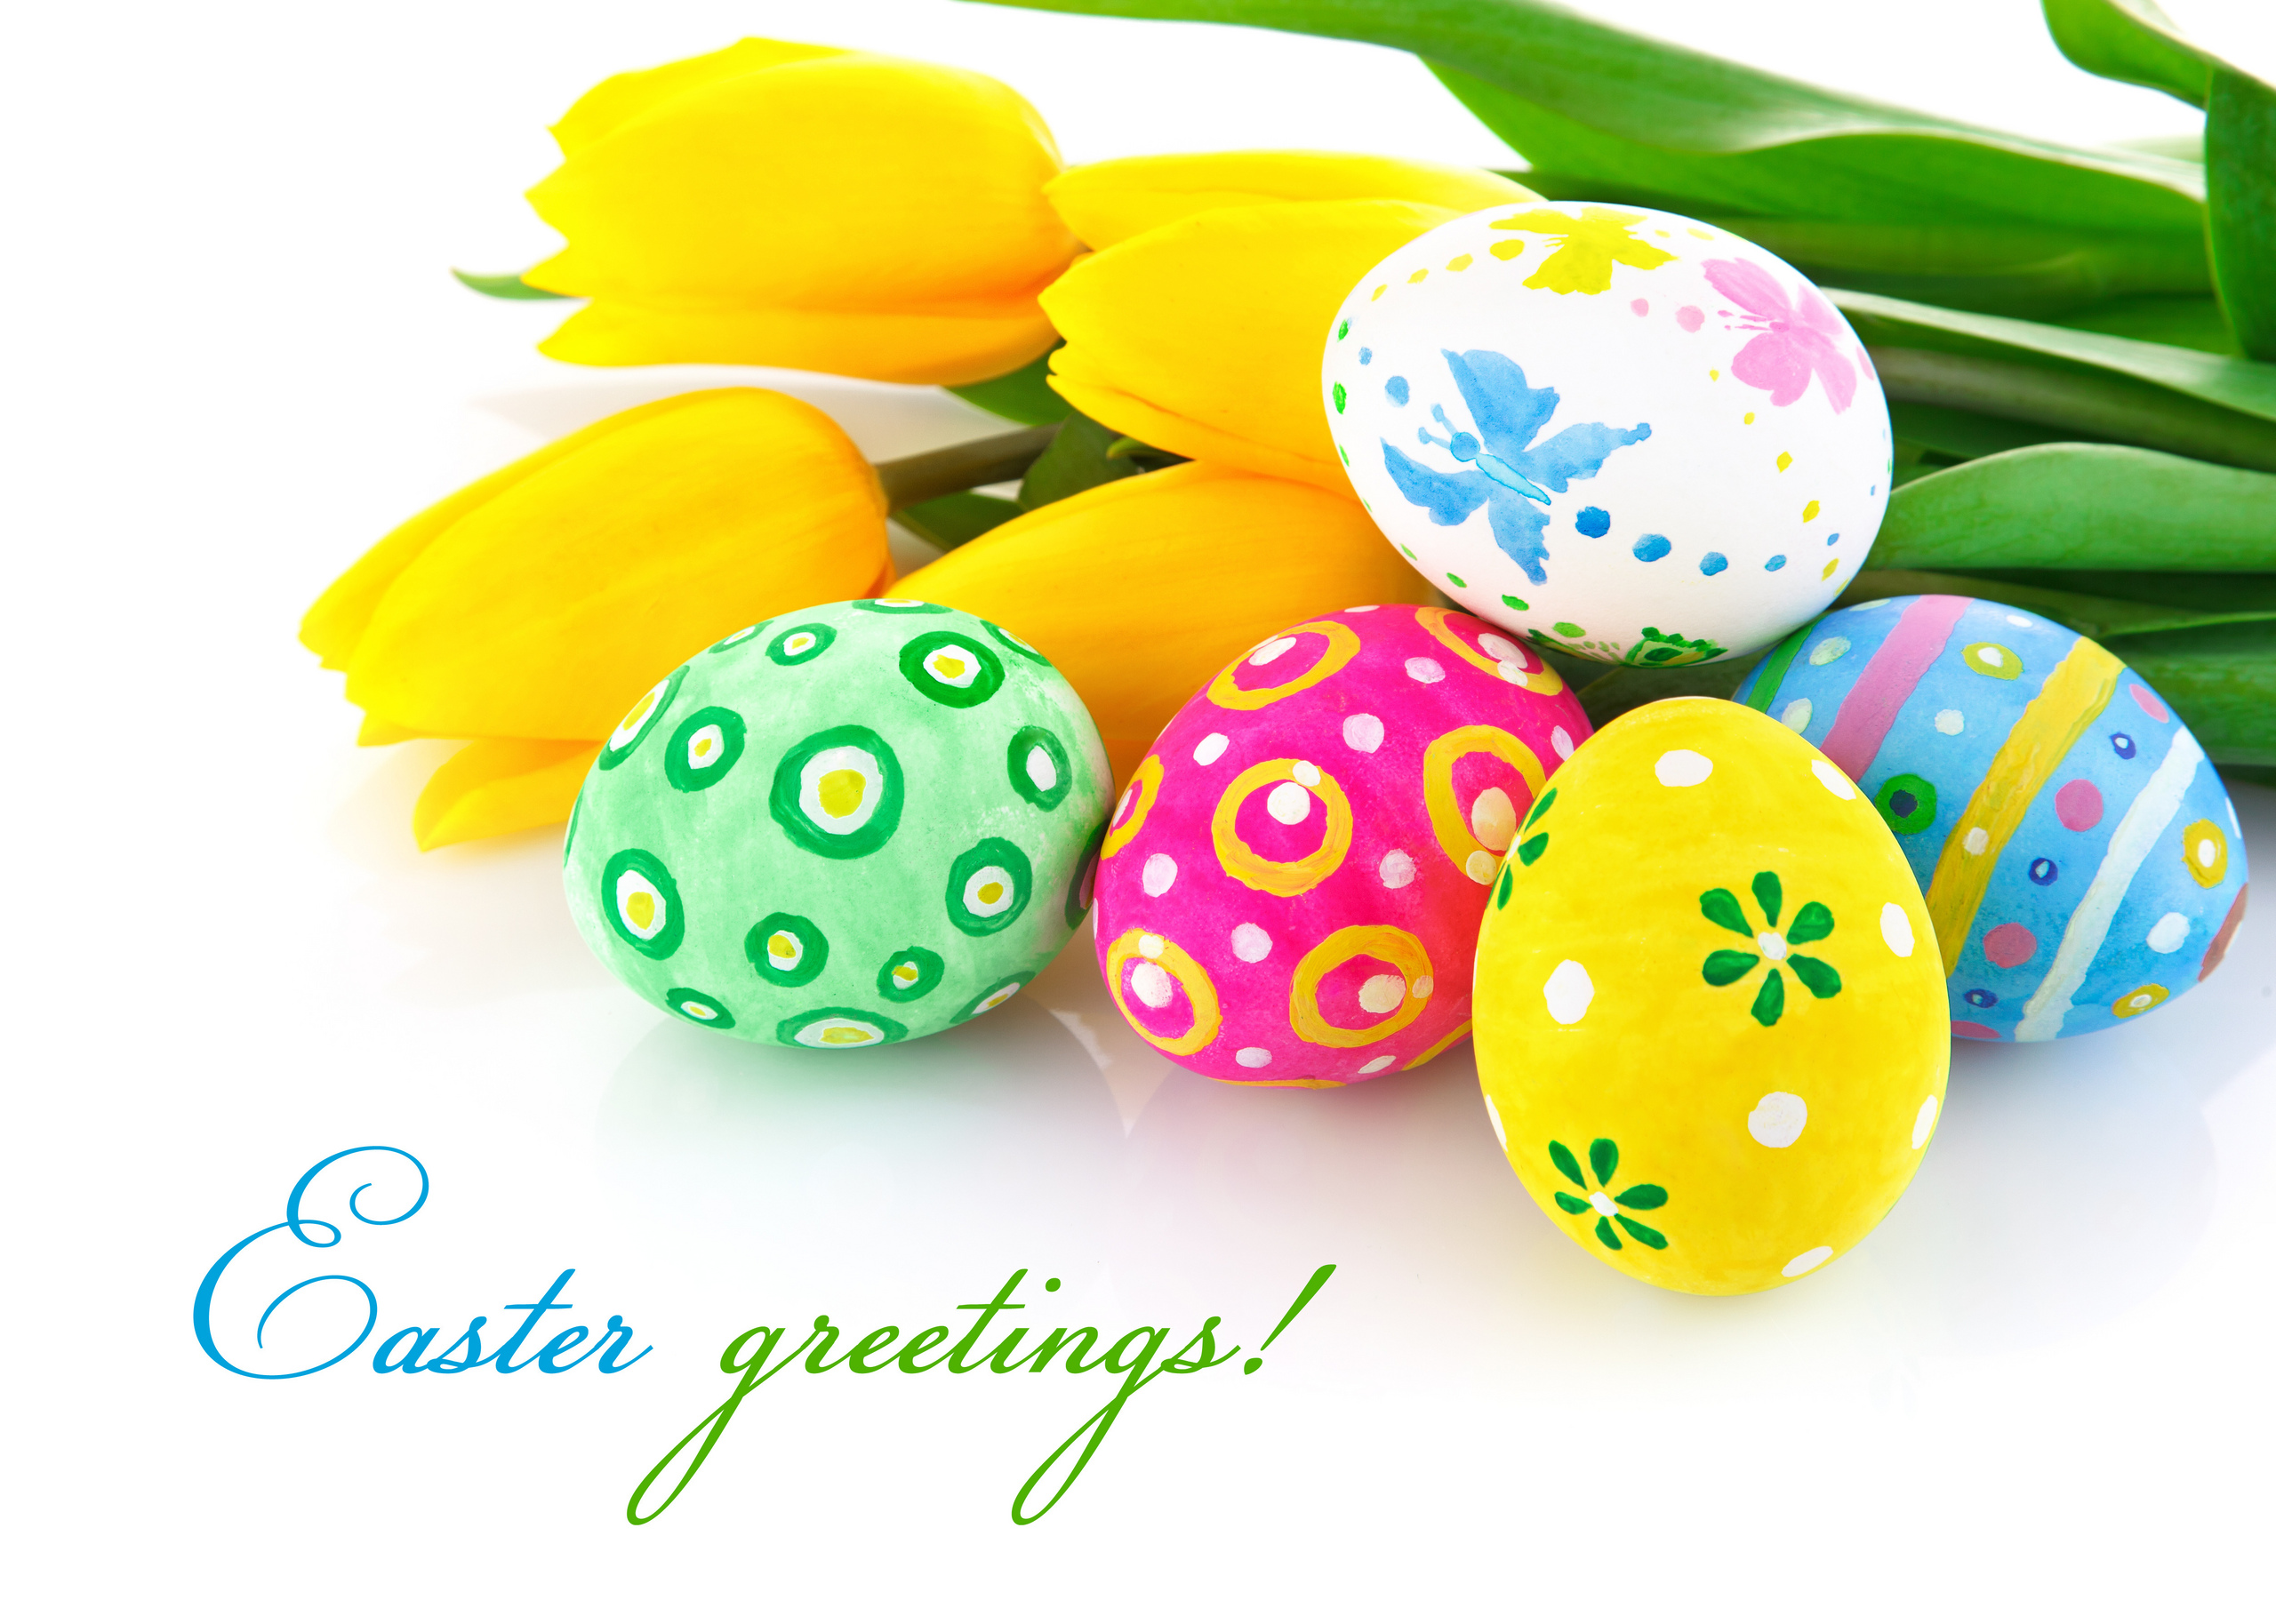 Easter Happy Greeting Card